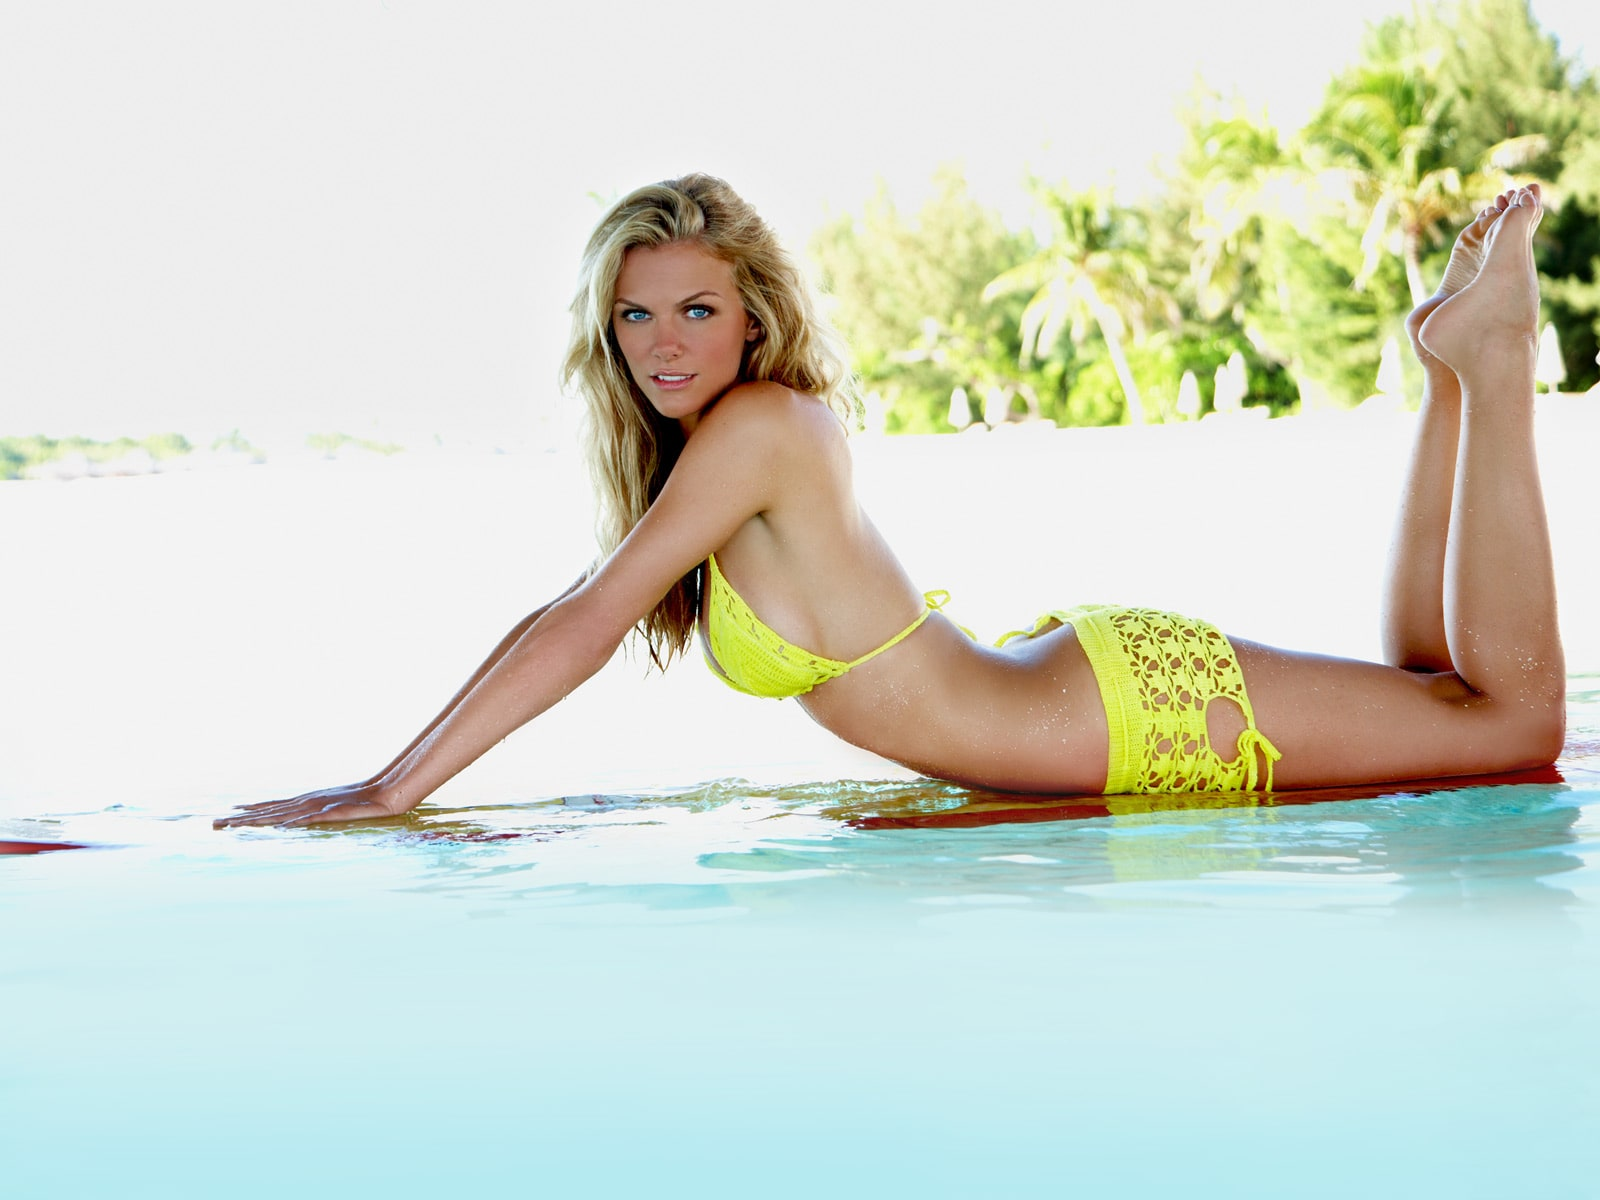 Brooklyn Decker hot pics